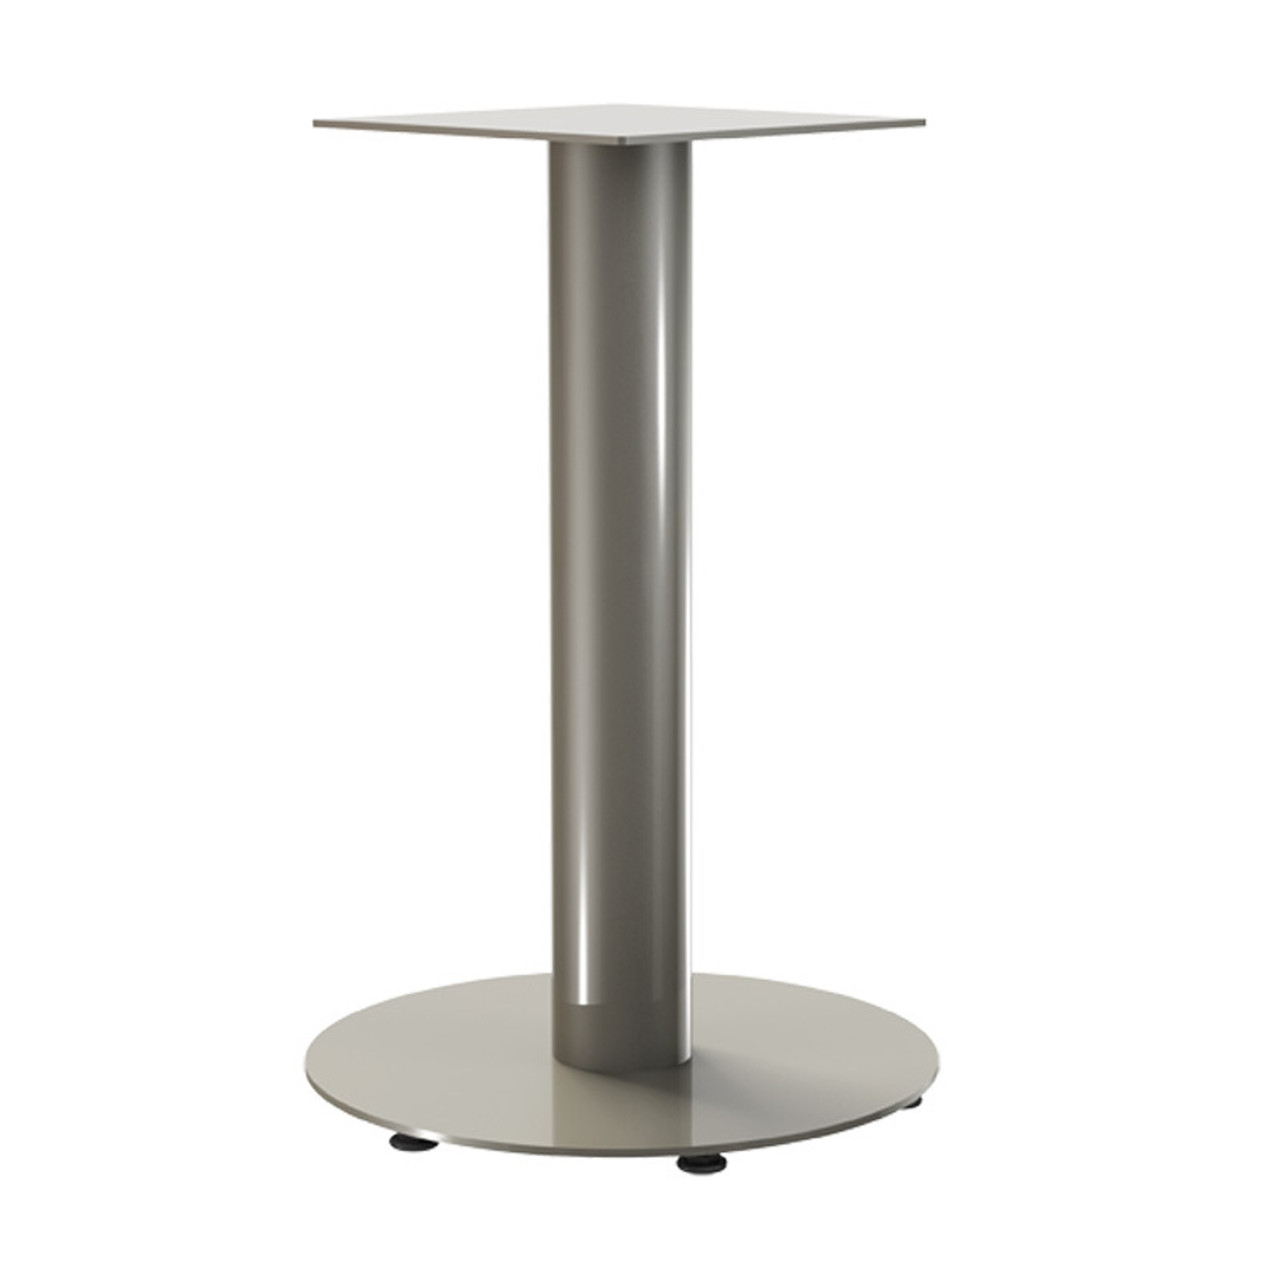 "Bar height, 18"" diameter pedestal base version shown here with additional 1"" levelers."